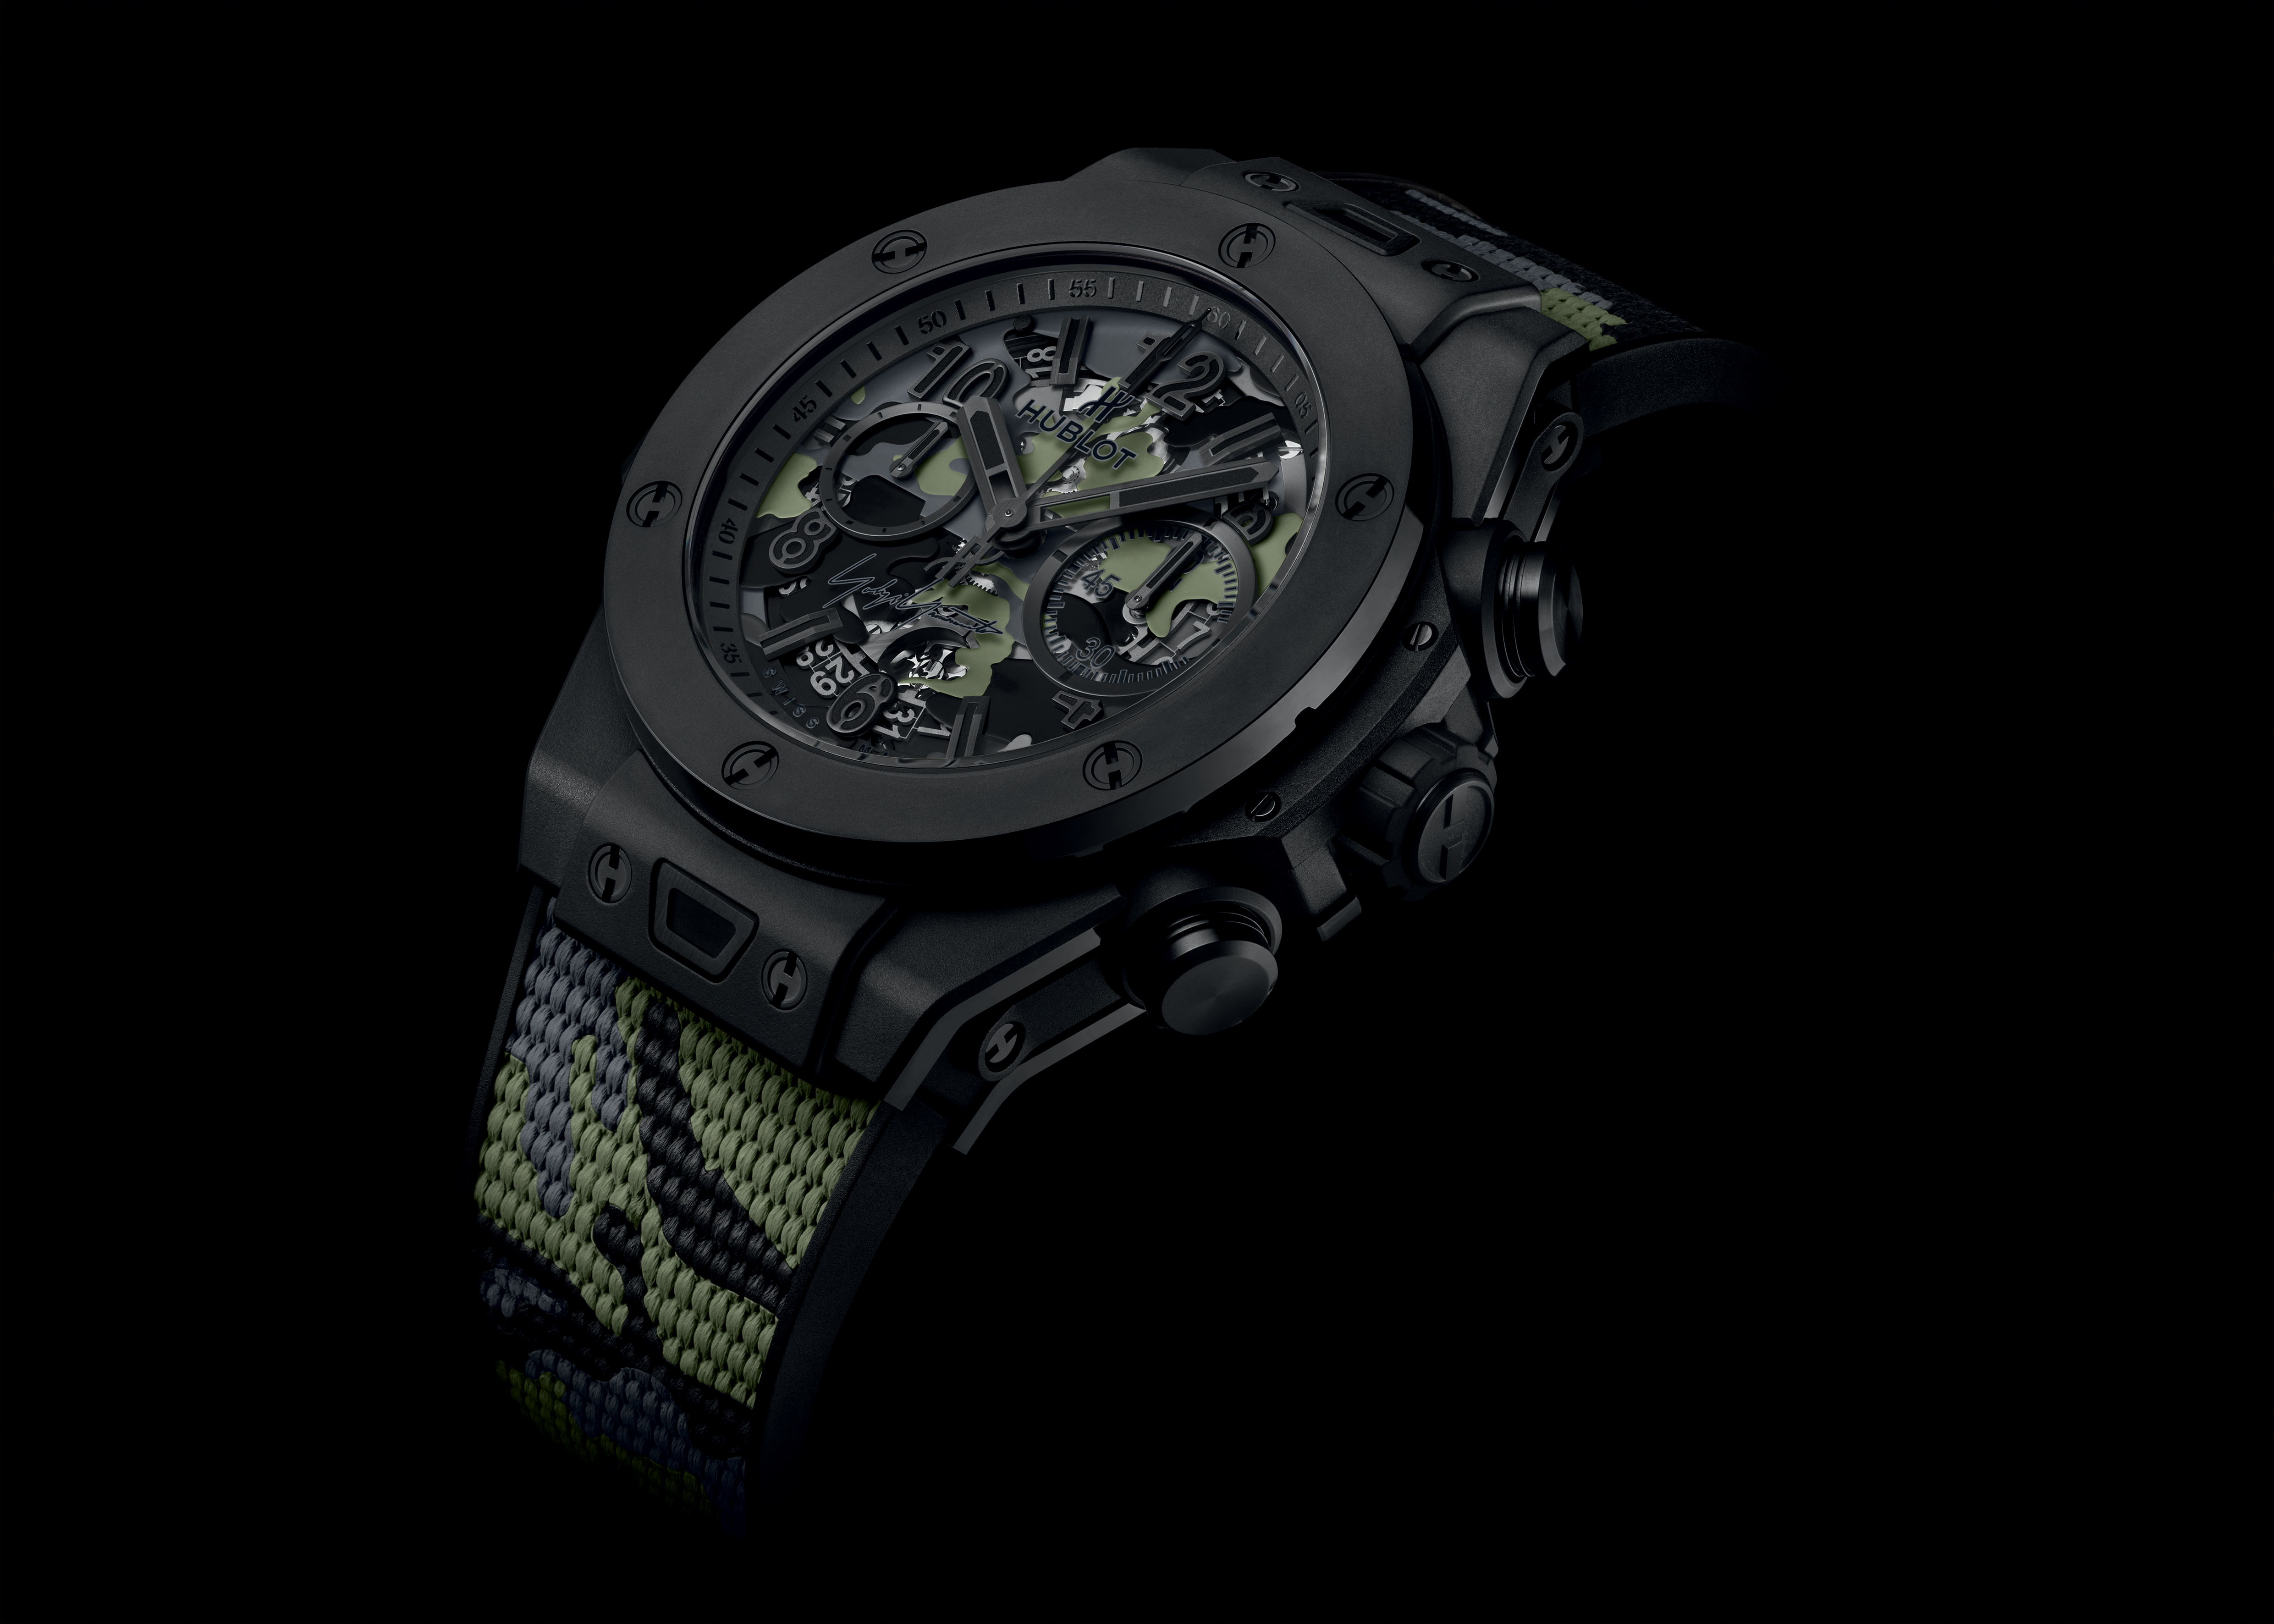 INTRODUCING: The Hublot Big Bang Camo Yohji Yamamoto is everything that's great about the brand, in a watch